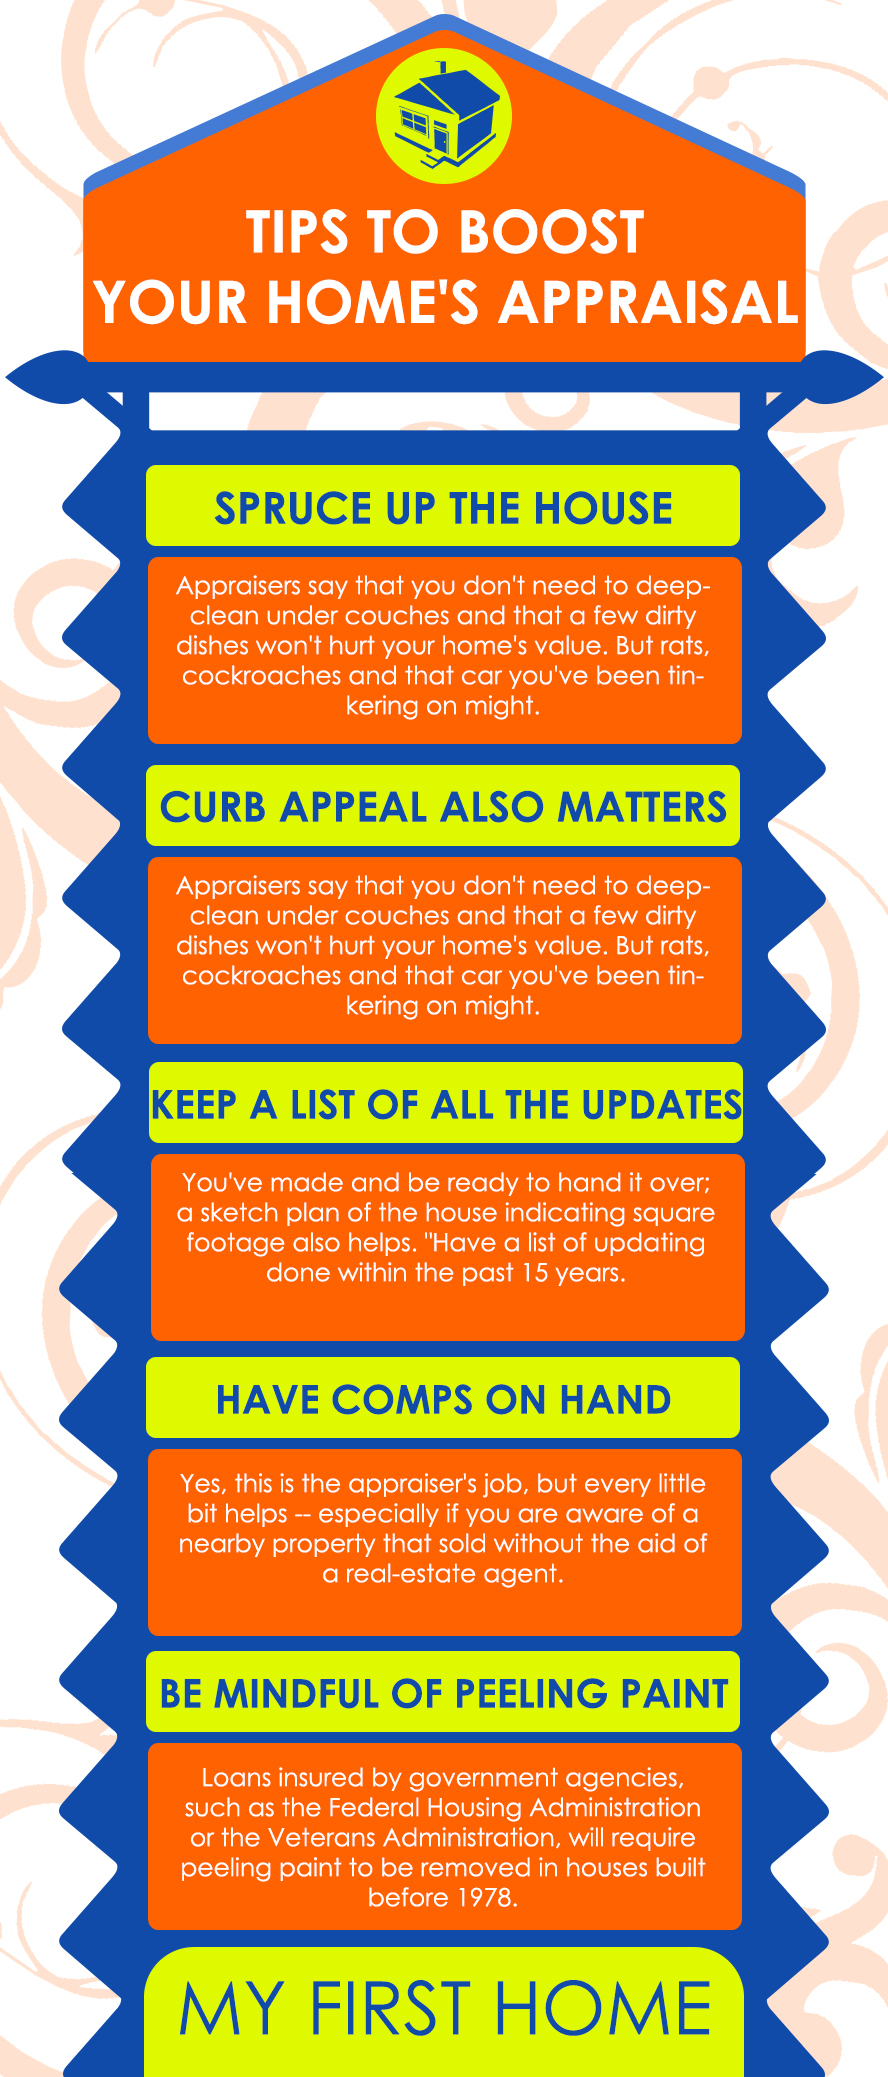 tips to boost your home's appraisal